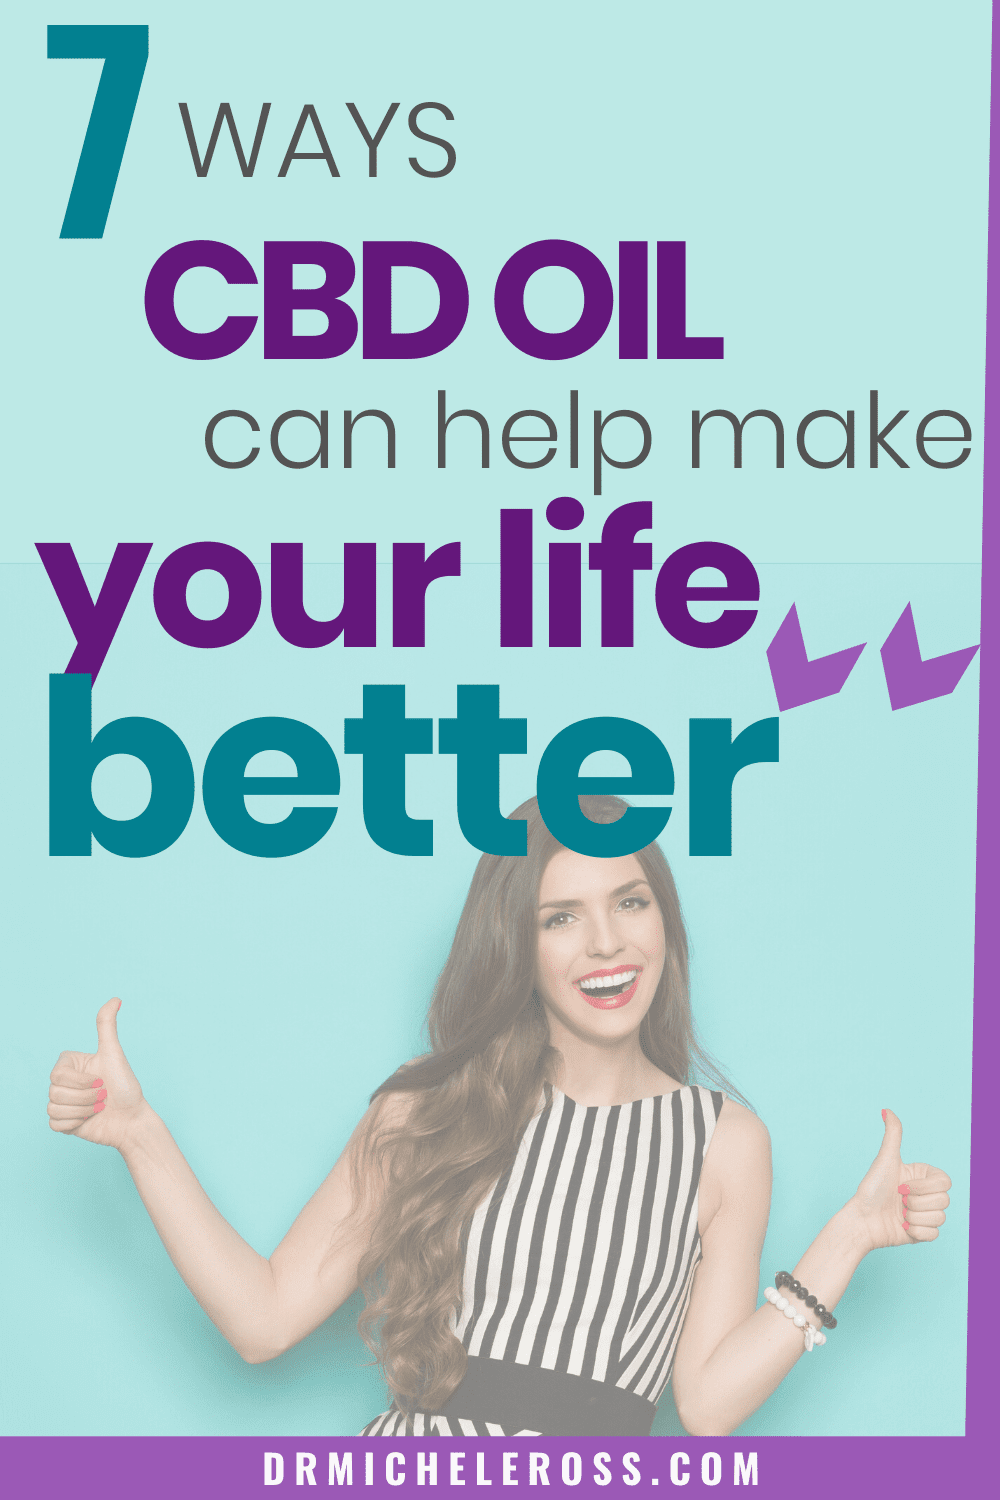 7 Unexpected Ways CBD Can Make Your Life Better